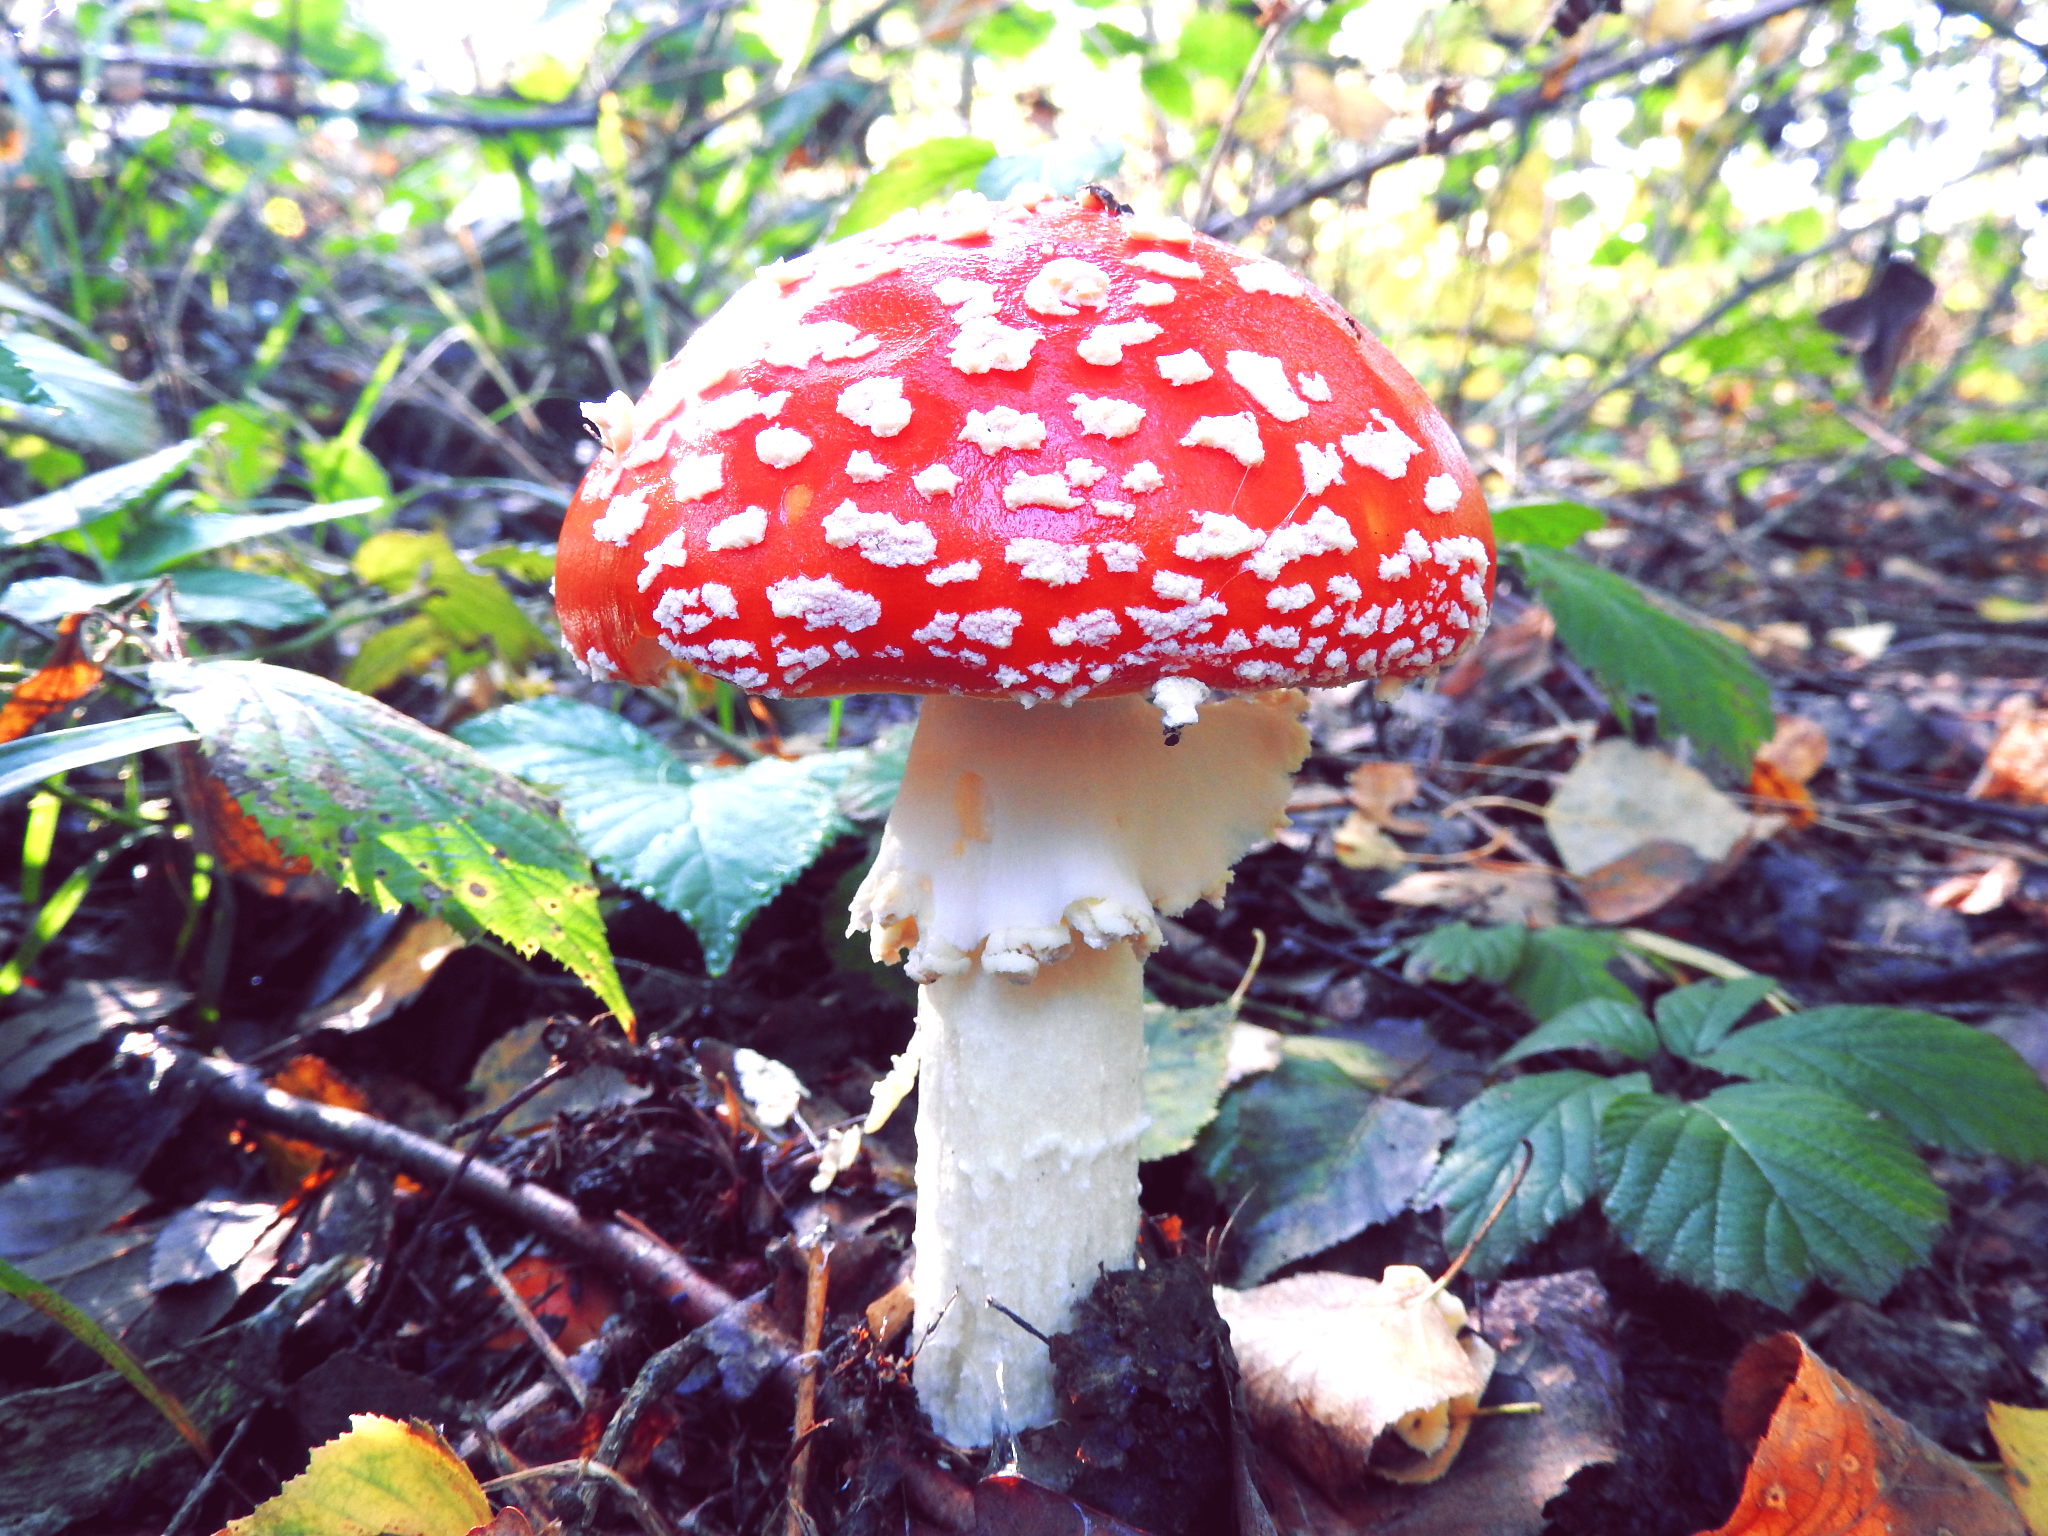 The Colorful Mushrooms